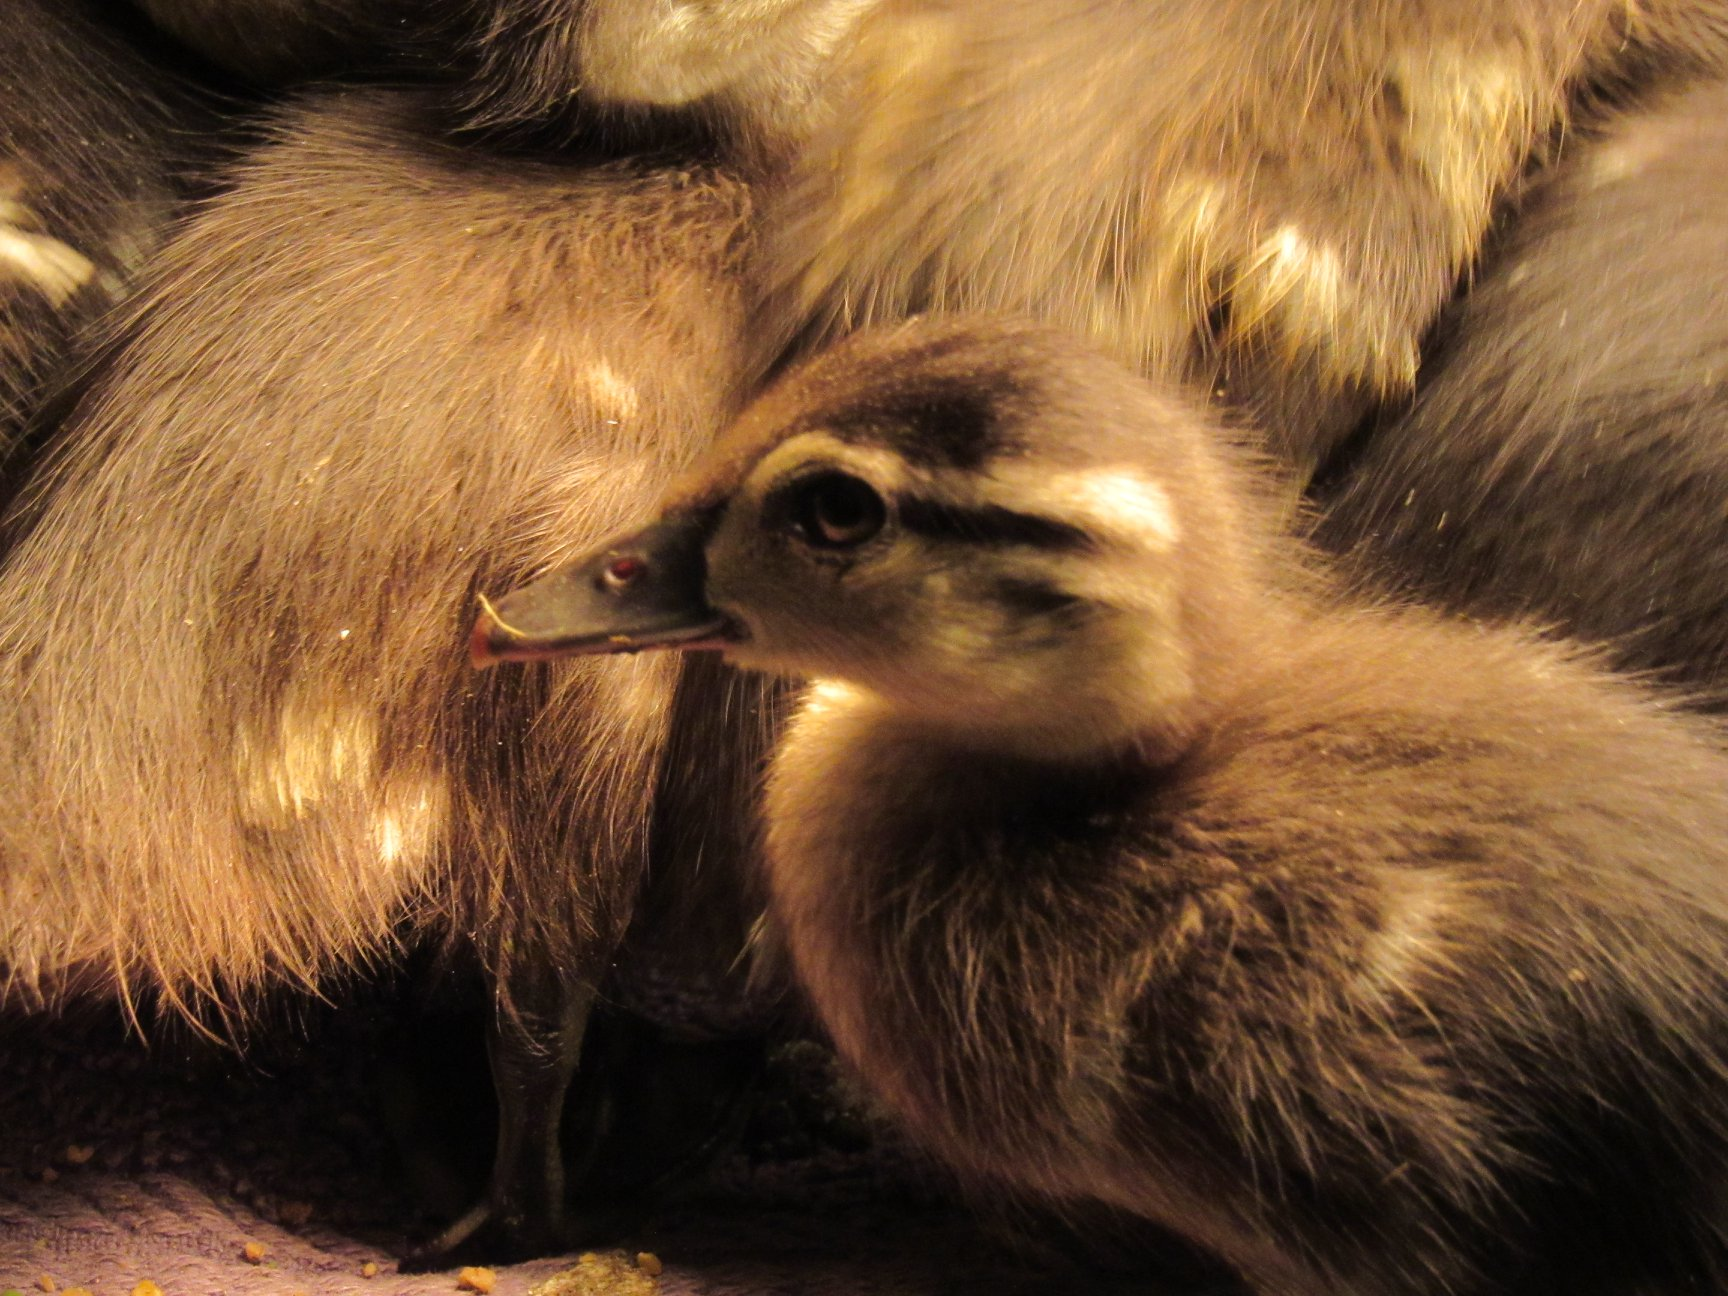 Duckings we have ducklings! Mallard and Wood Duck duckings in every age group